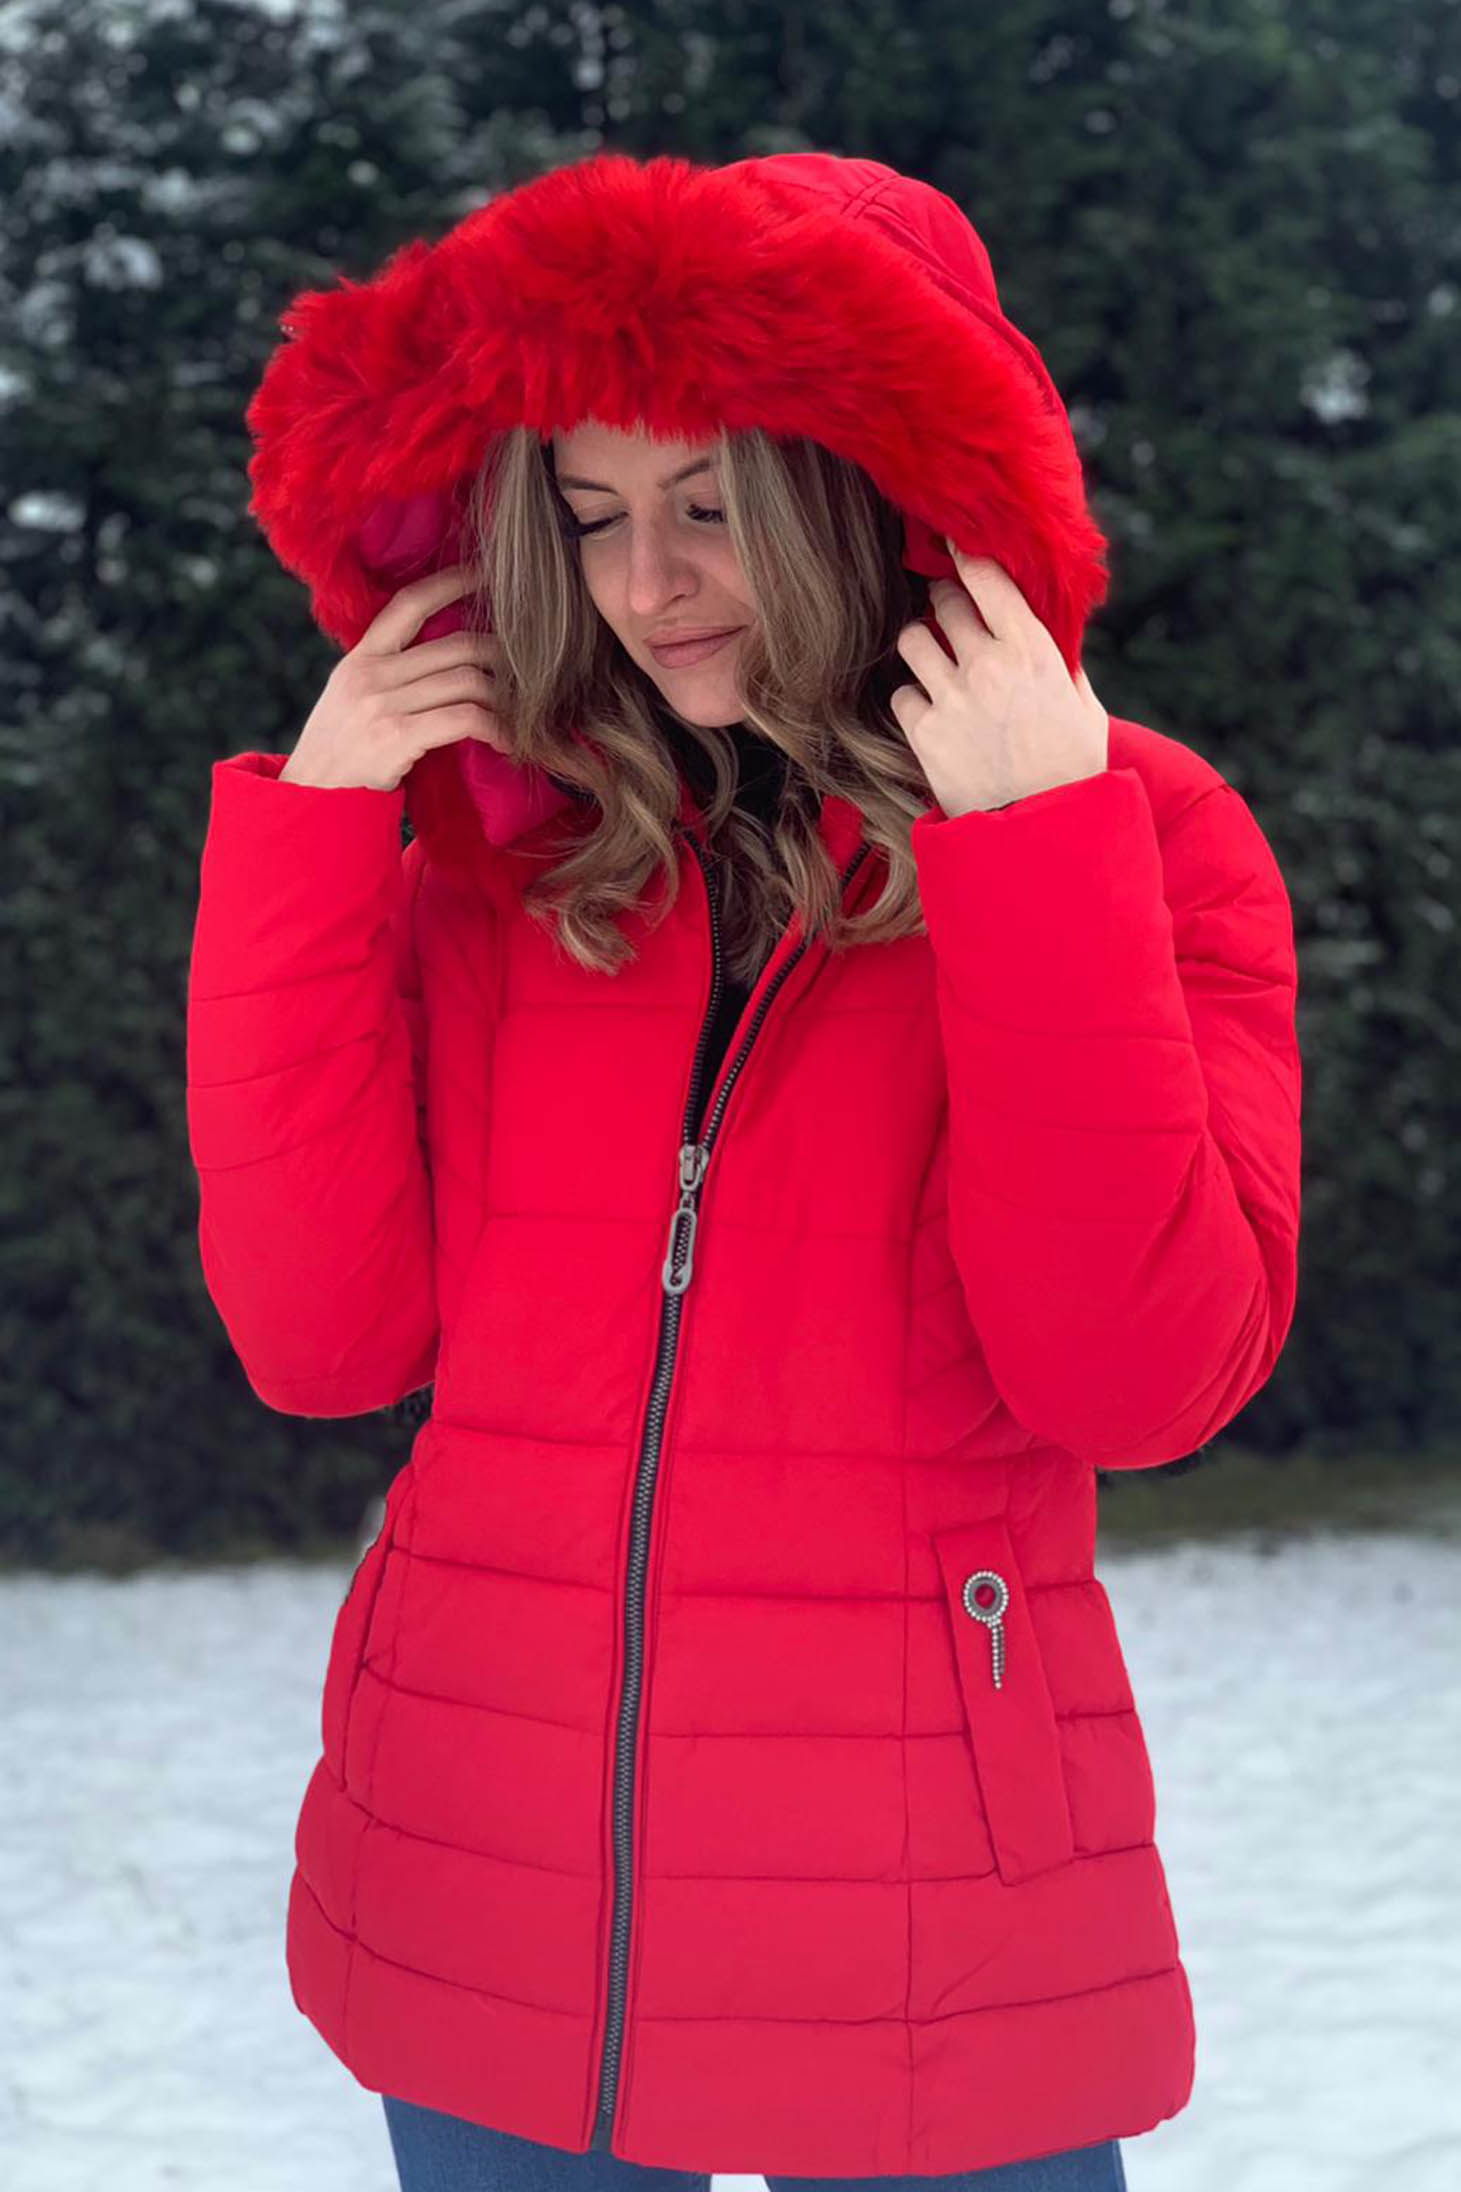 Red jacket short cut from slicker the jacket has hood and pockets with embellished accessories